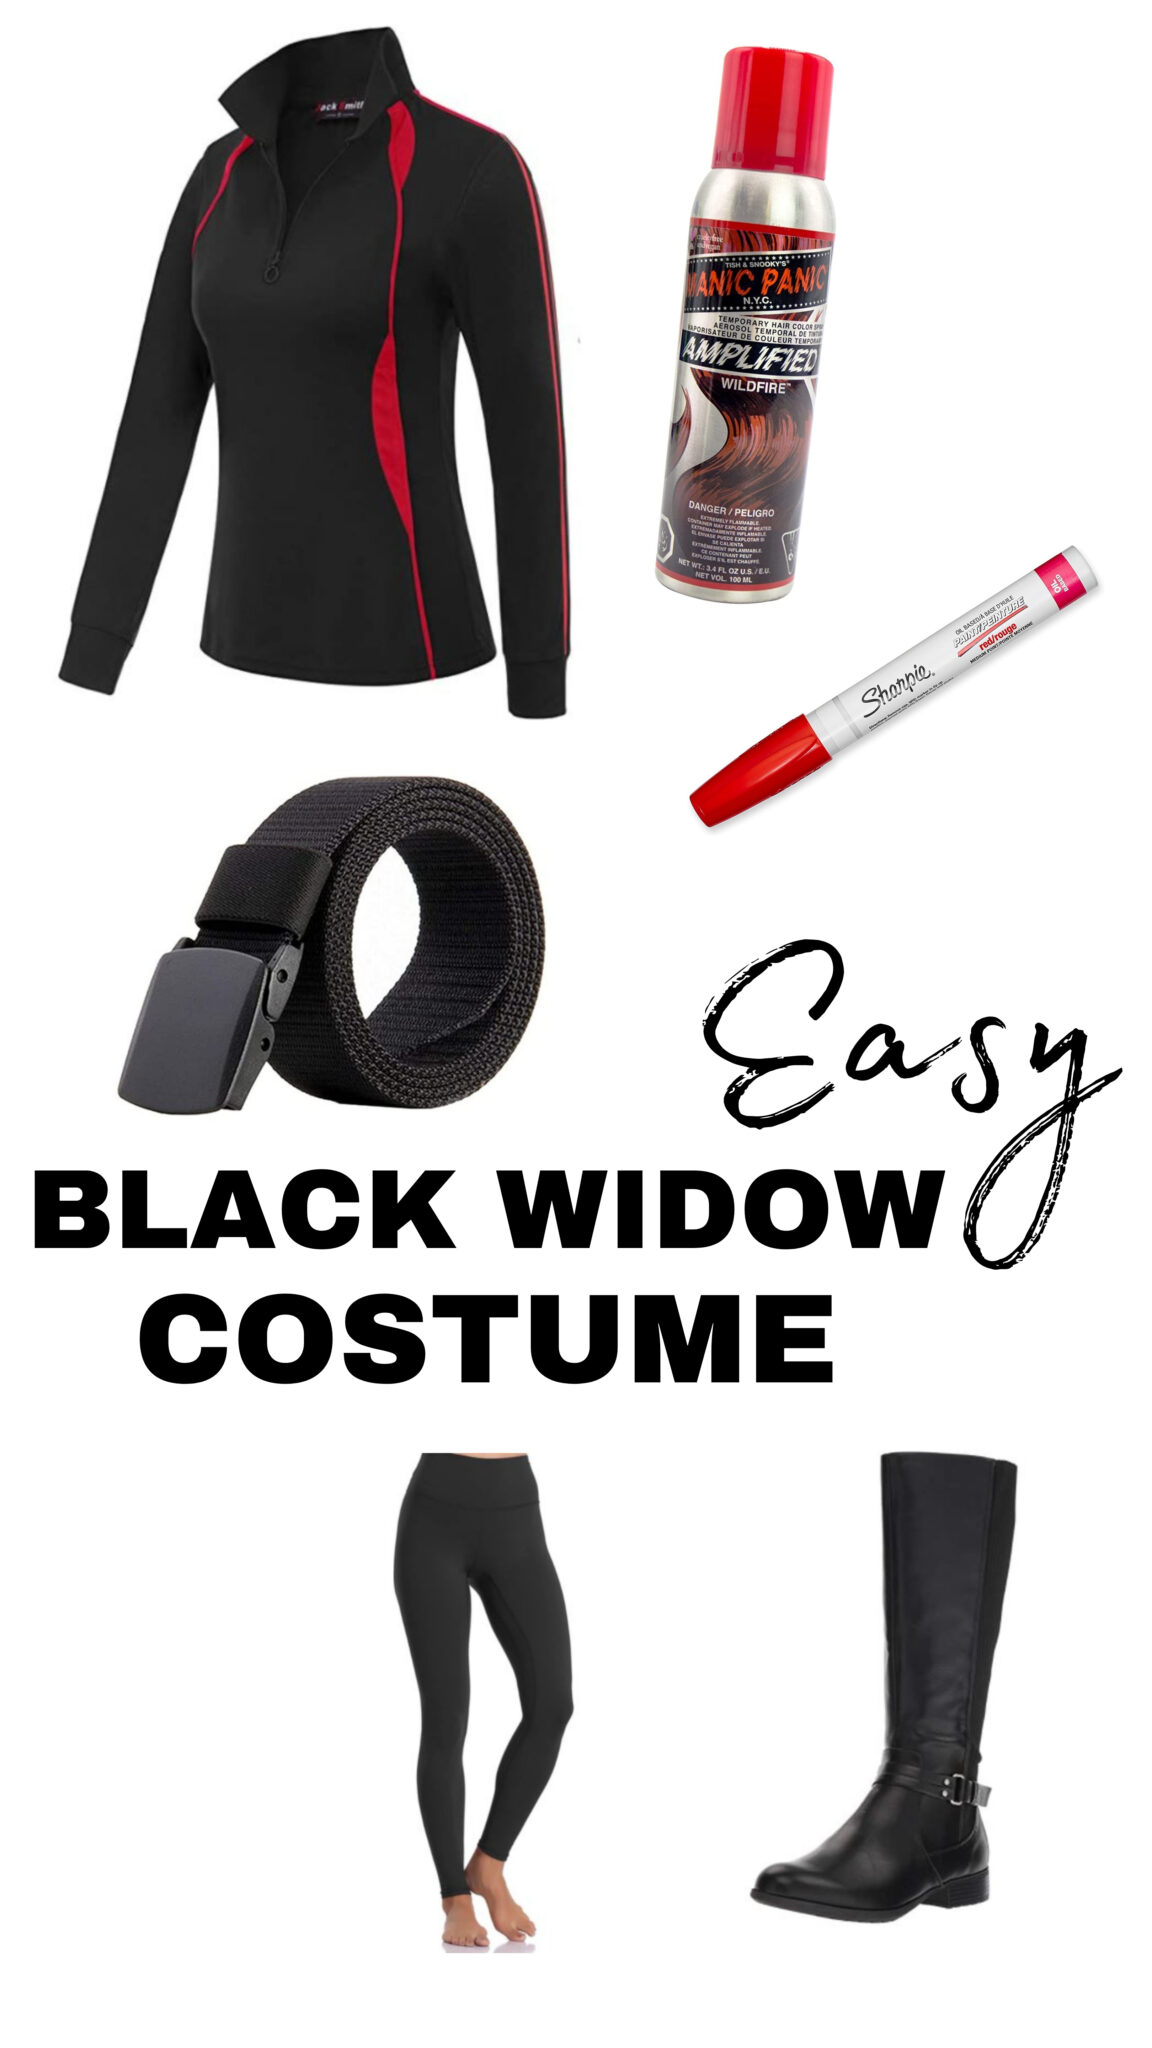 East DIY Marvel Themed Costumes for Halloween Using Regular Clothes All Things with Purpose Sarah Lemp 8